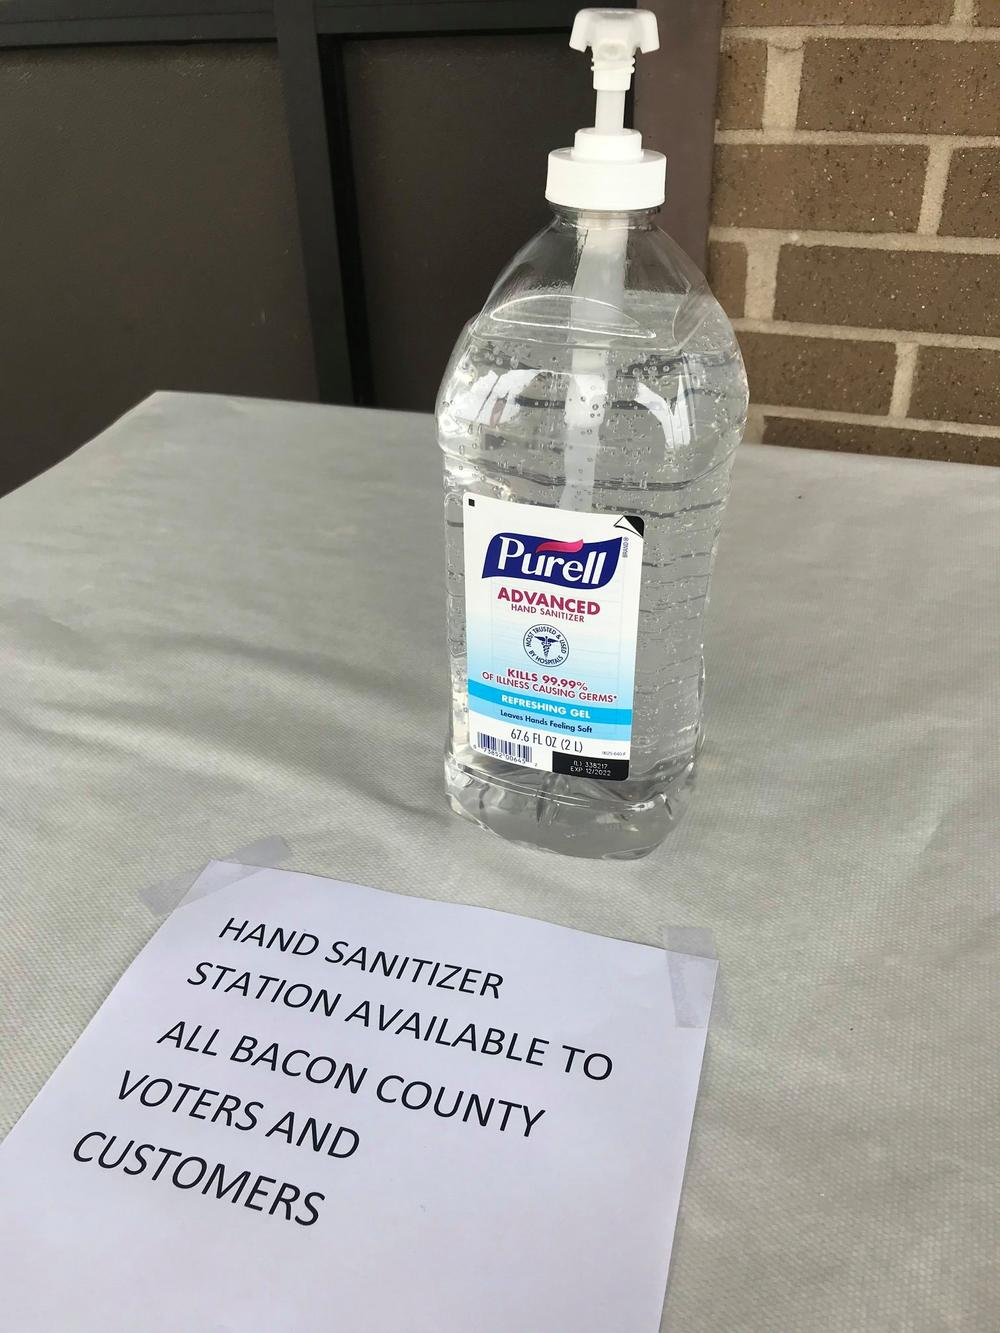 The Bacon County Elections Office has hand sanitizer for voters and visitors because of the COVID-19 pandemic.